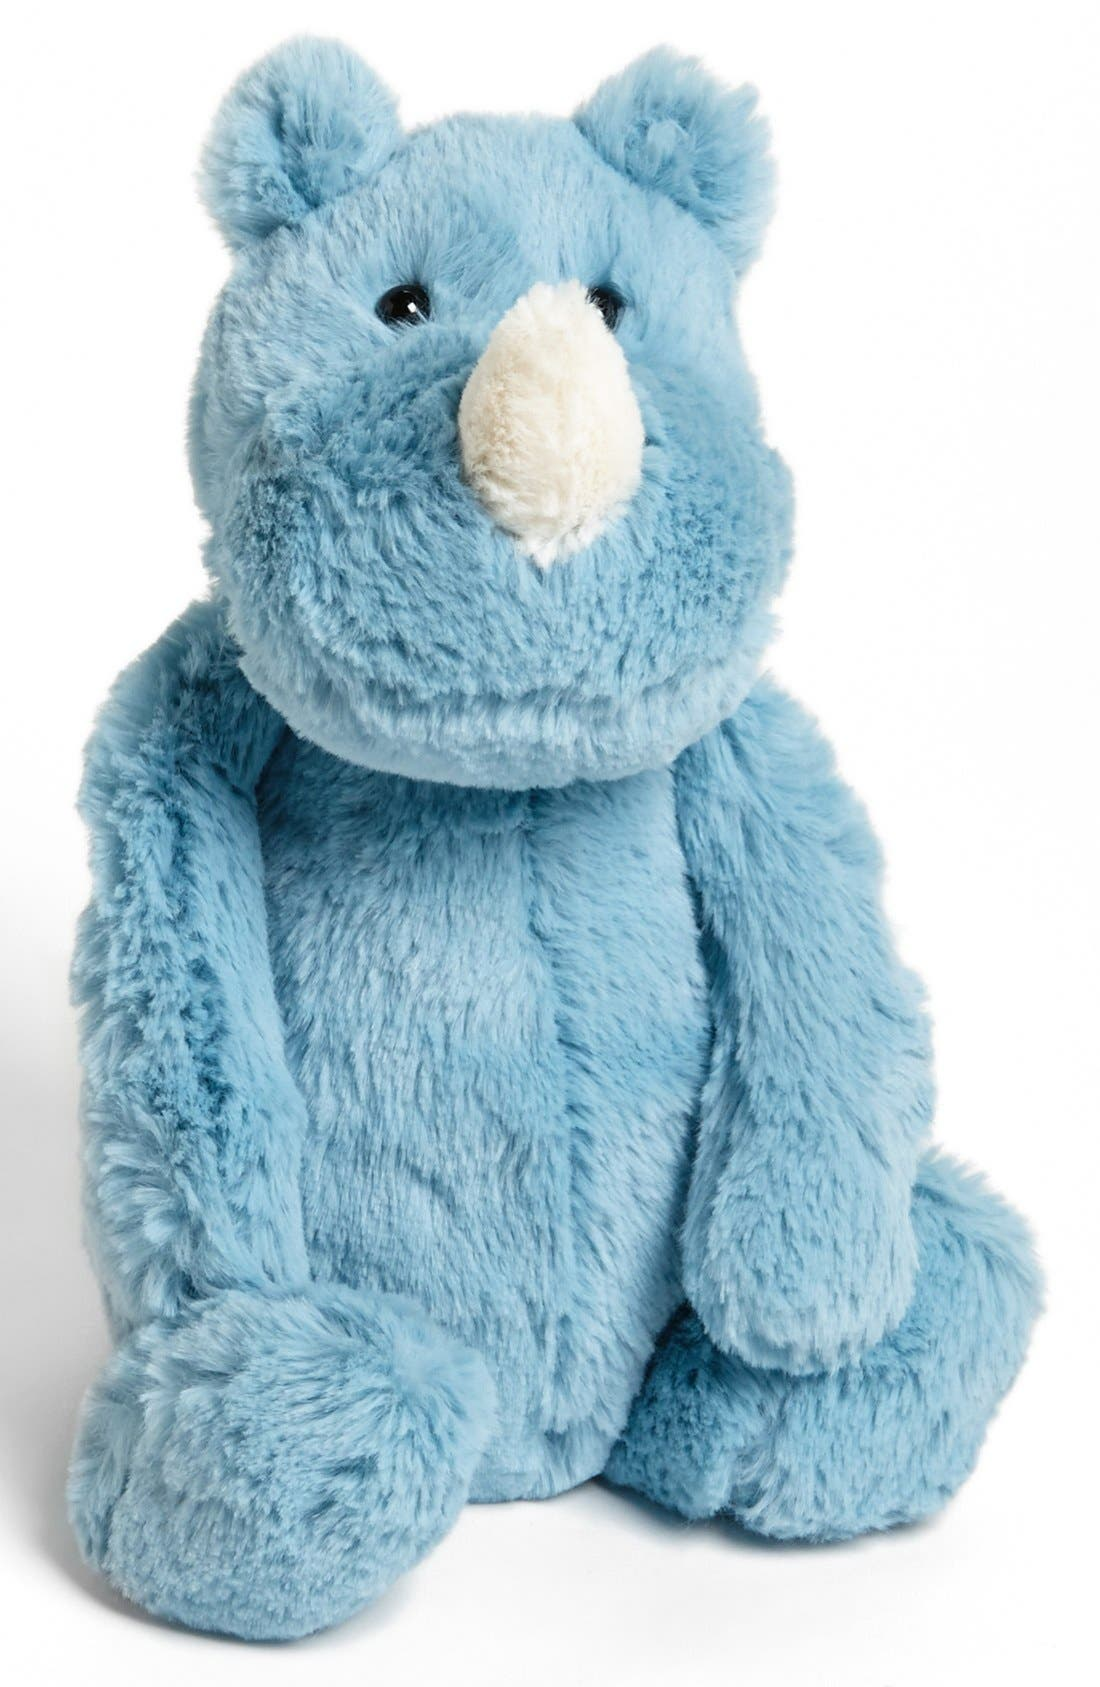 Main Image - Jellycat 'Bashful Rhino' Stuffed Animal